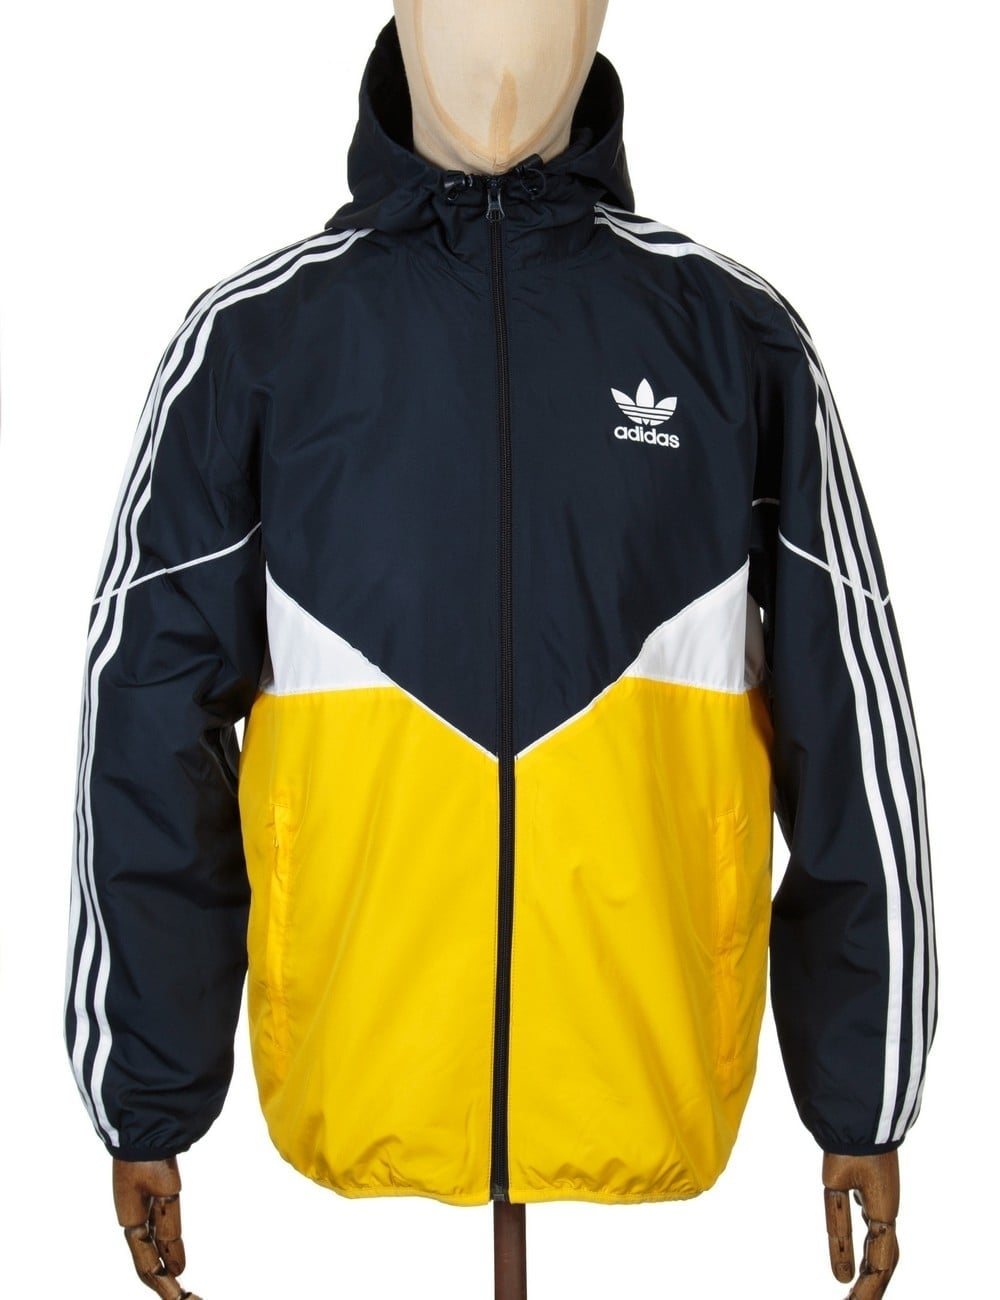 on sale f3f62 7225b Adidas Originals Colorado Wind Breaker Jacket - Legink Yellow